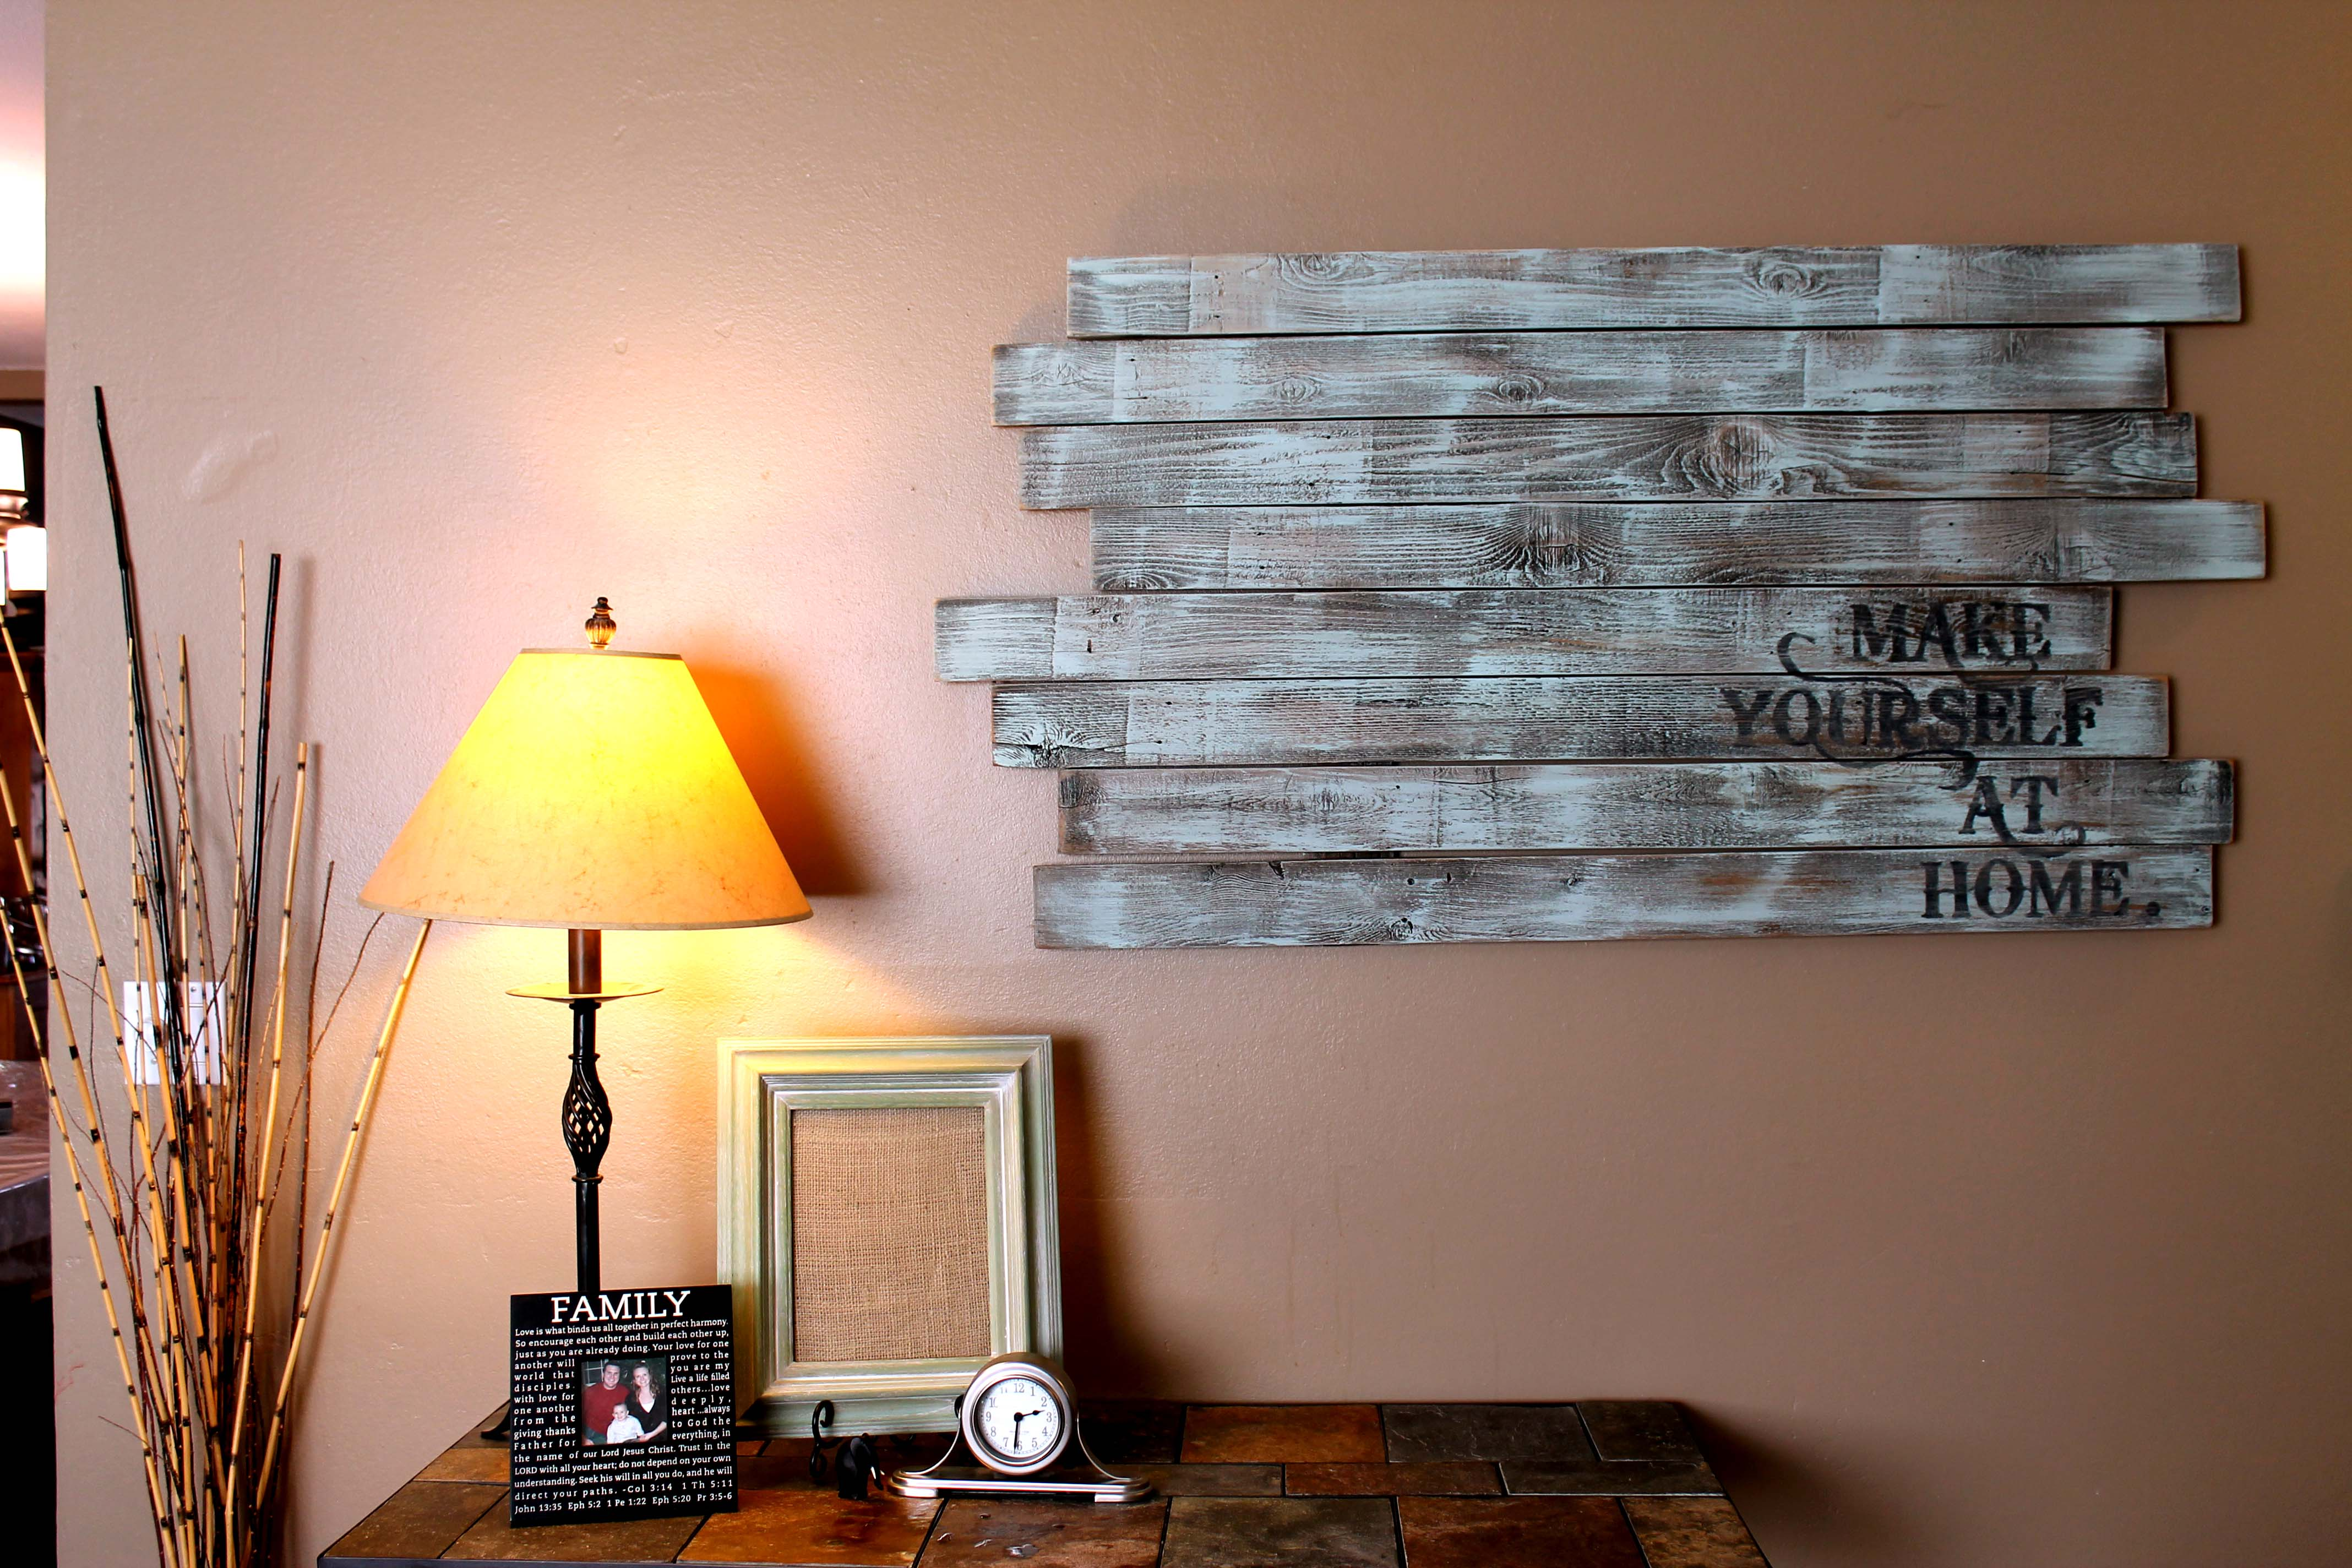 Repurposed fence post wall art snugasabugbaby Cool wall signs